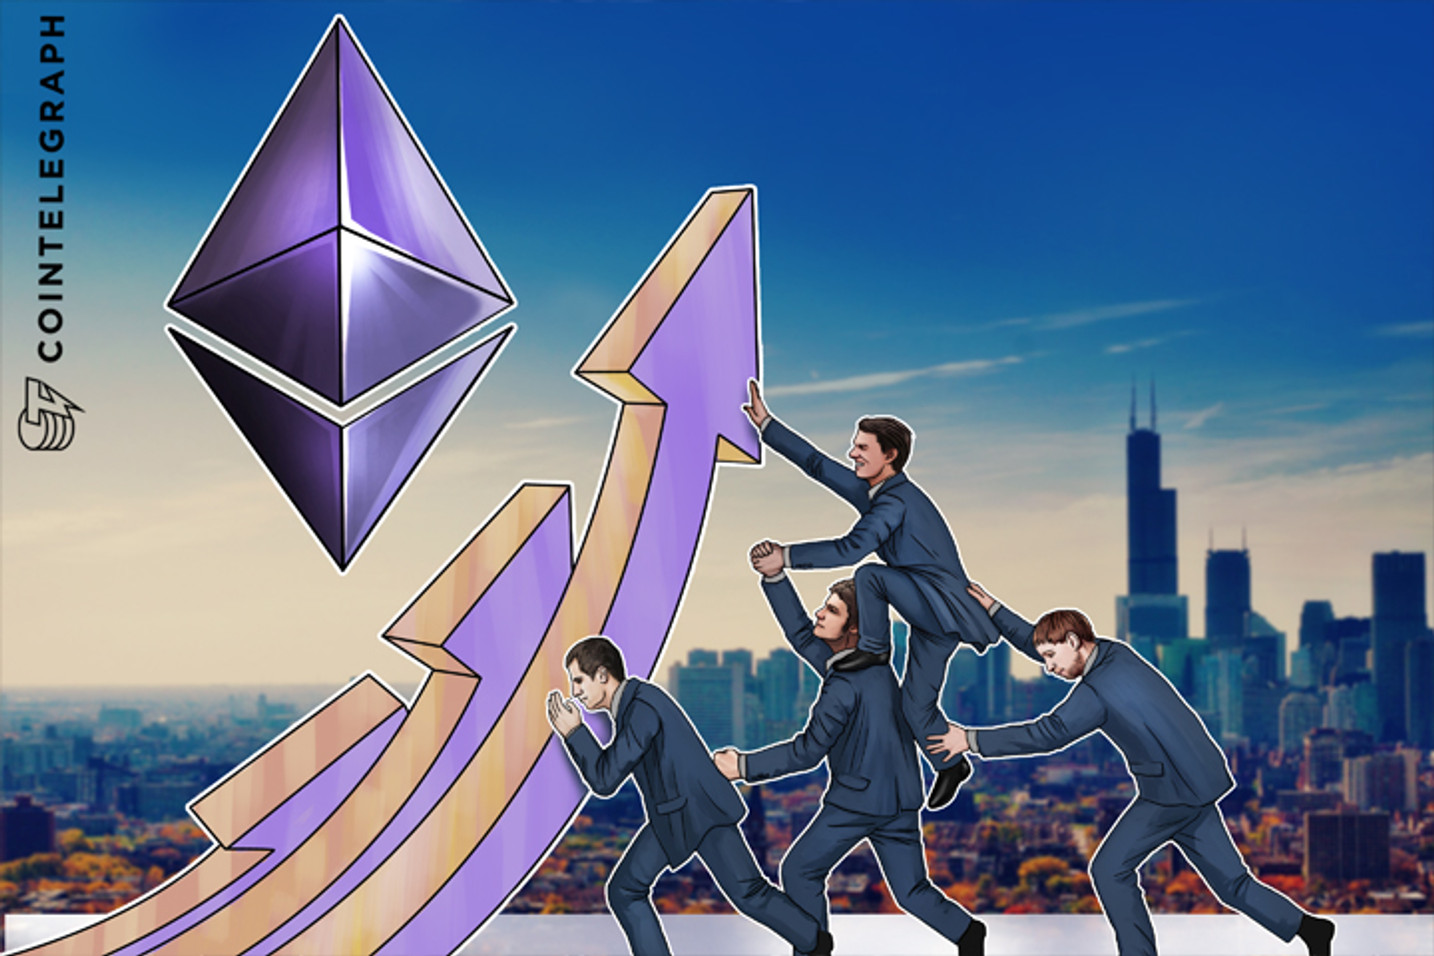 Ethereum-Based Projects Sustain Its Cryptocurrency Value Despite Setbacks